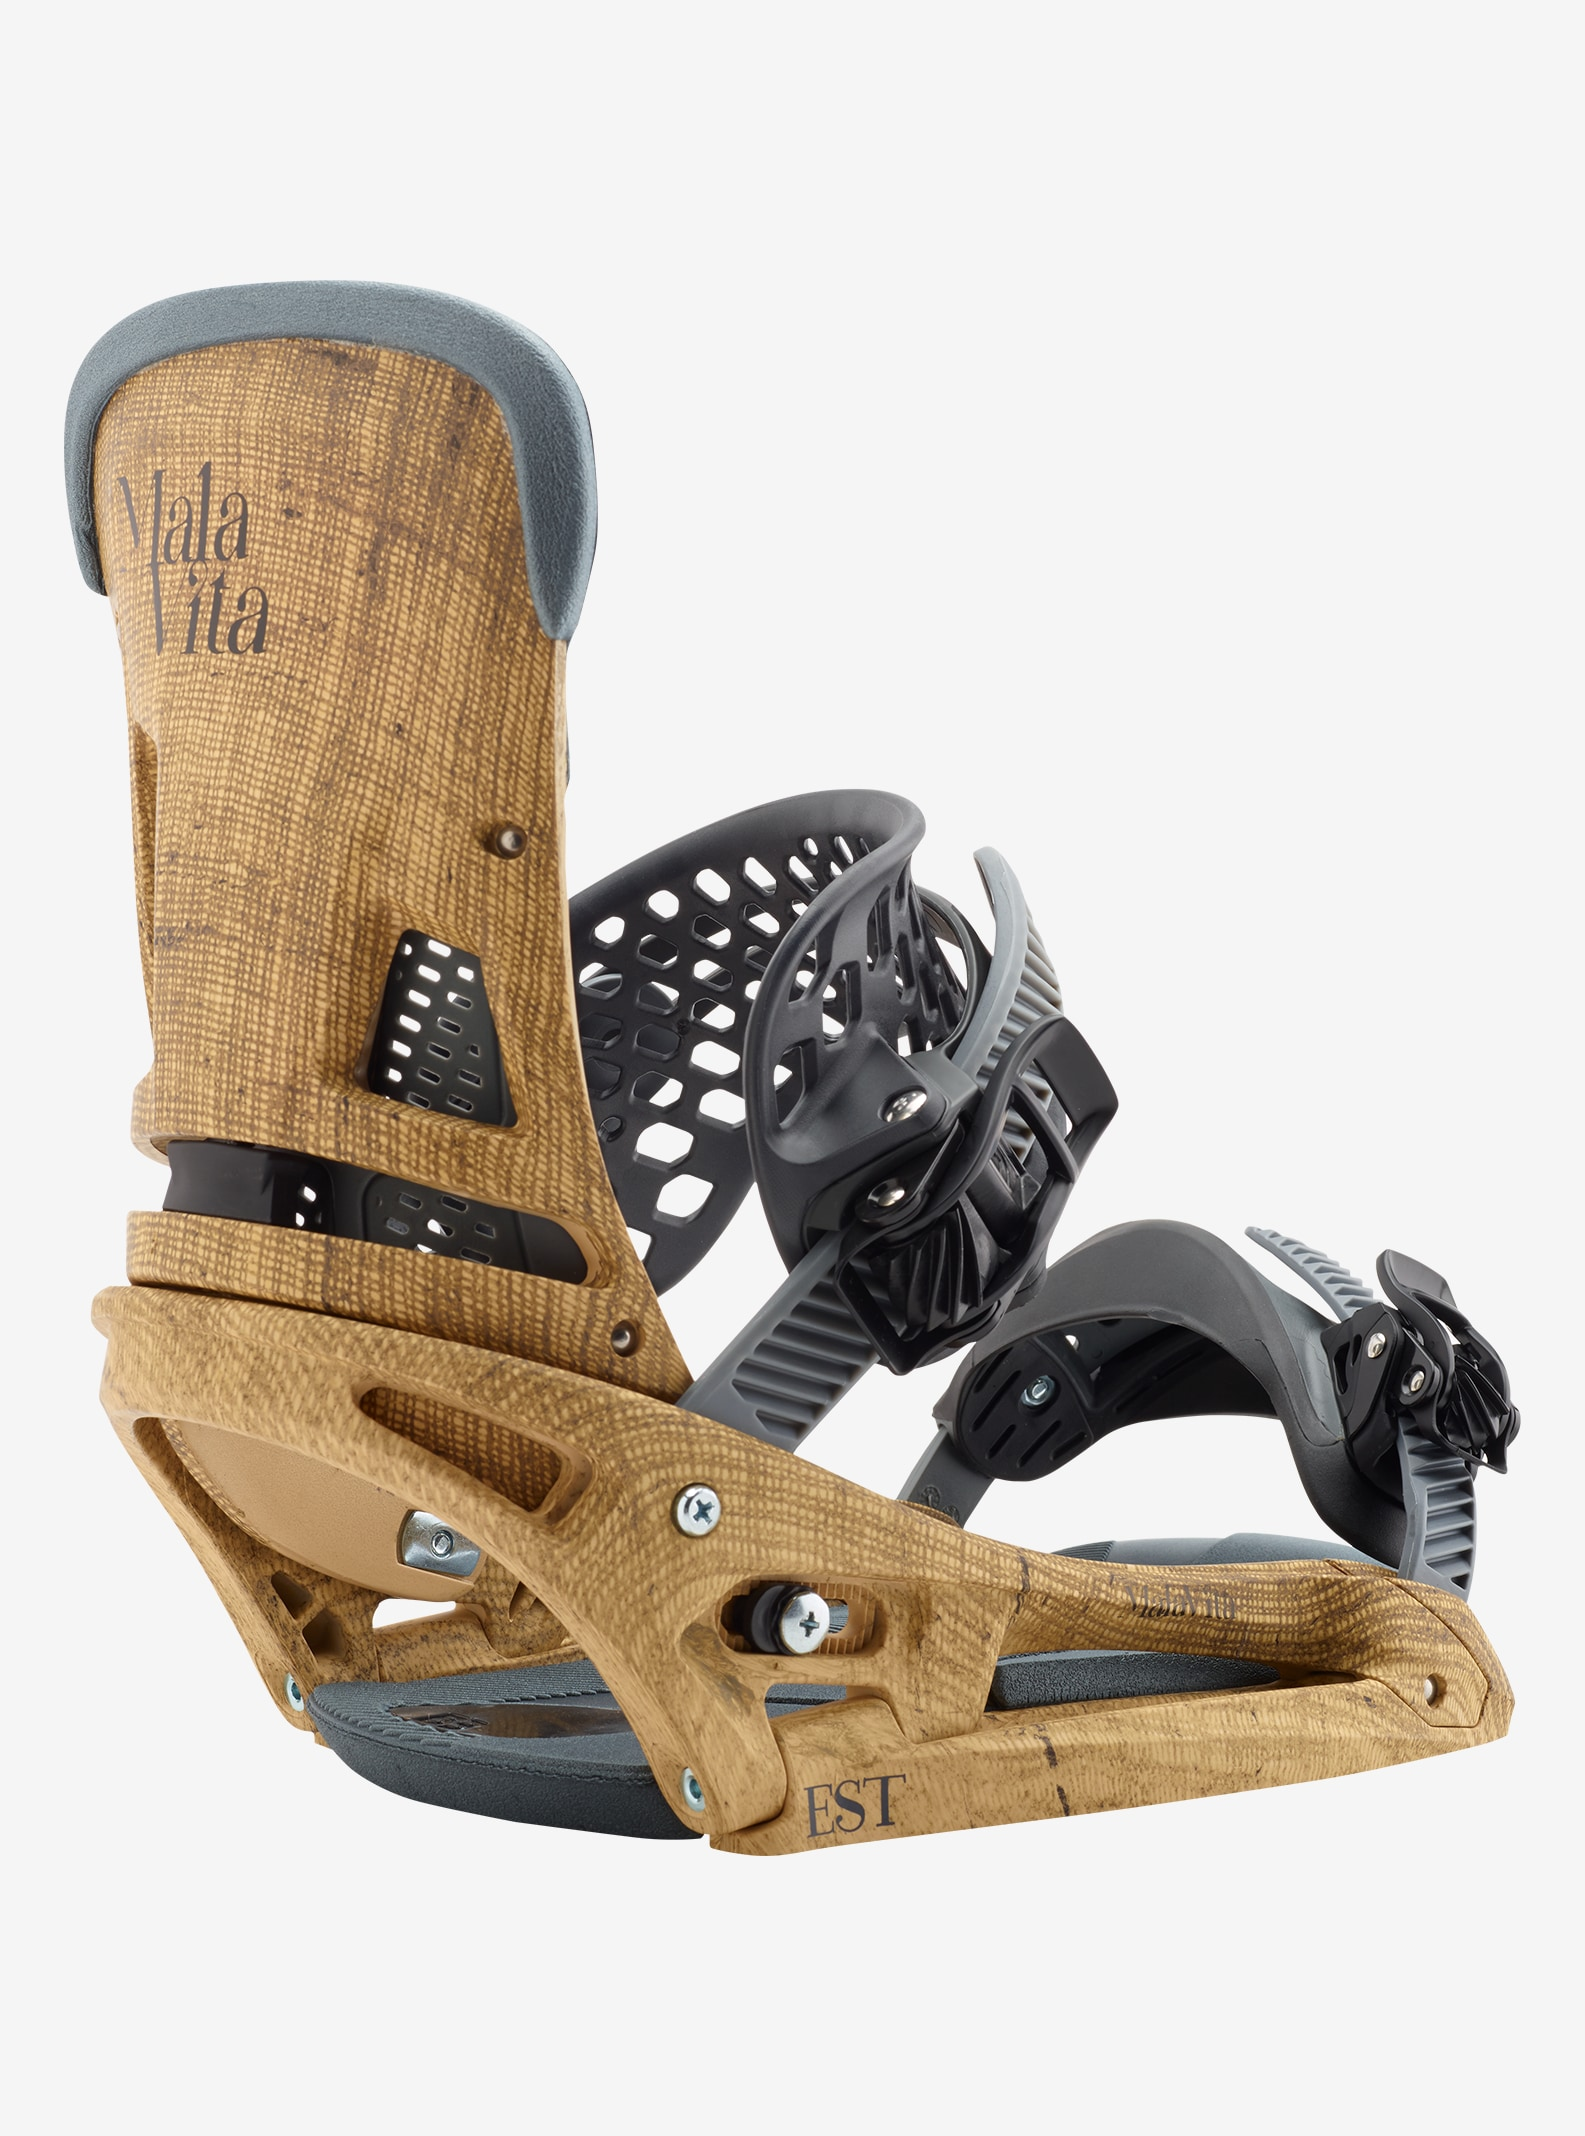 Men's Burton Malavita EST Snowboard Binding shown in Hemp